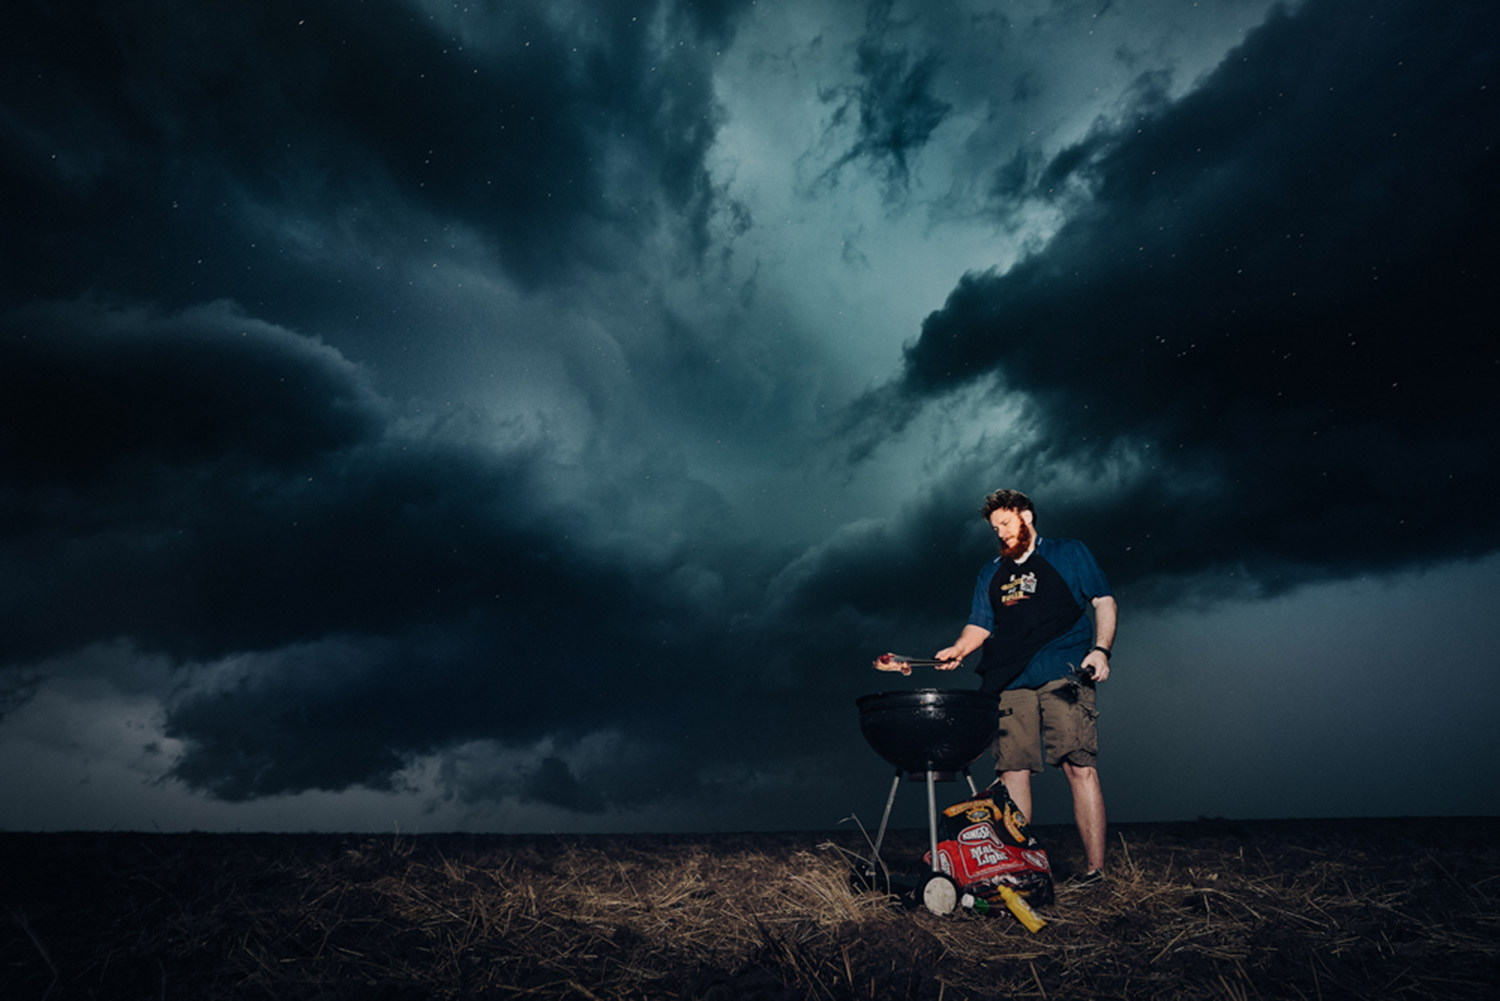 Benjamin Von Wong - man barbecuing in storm